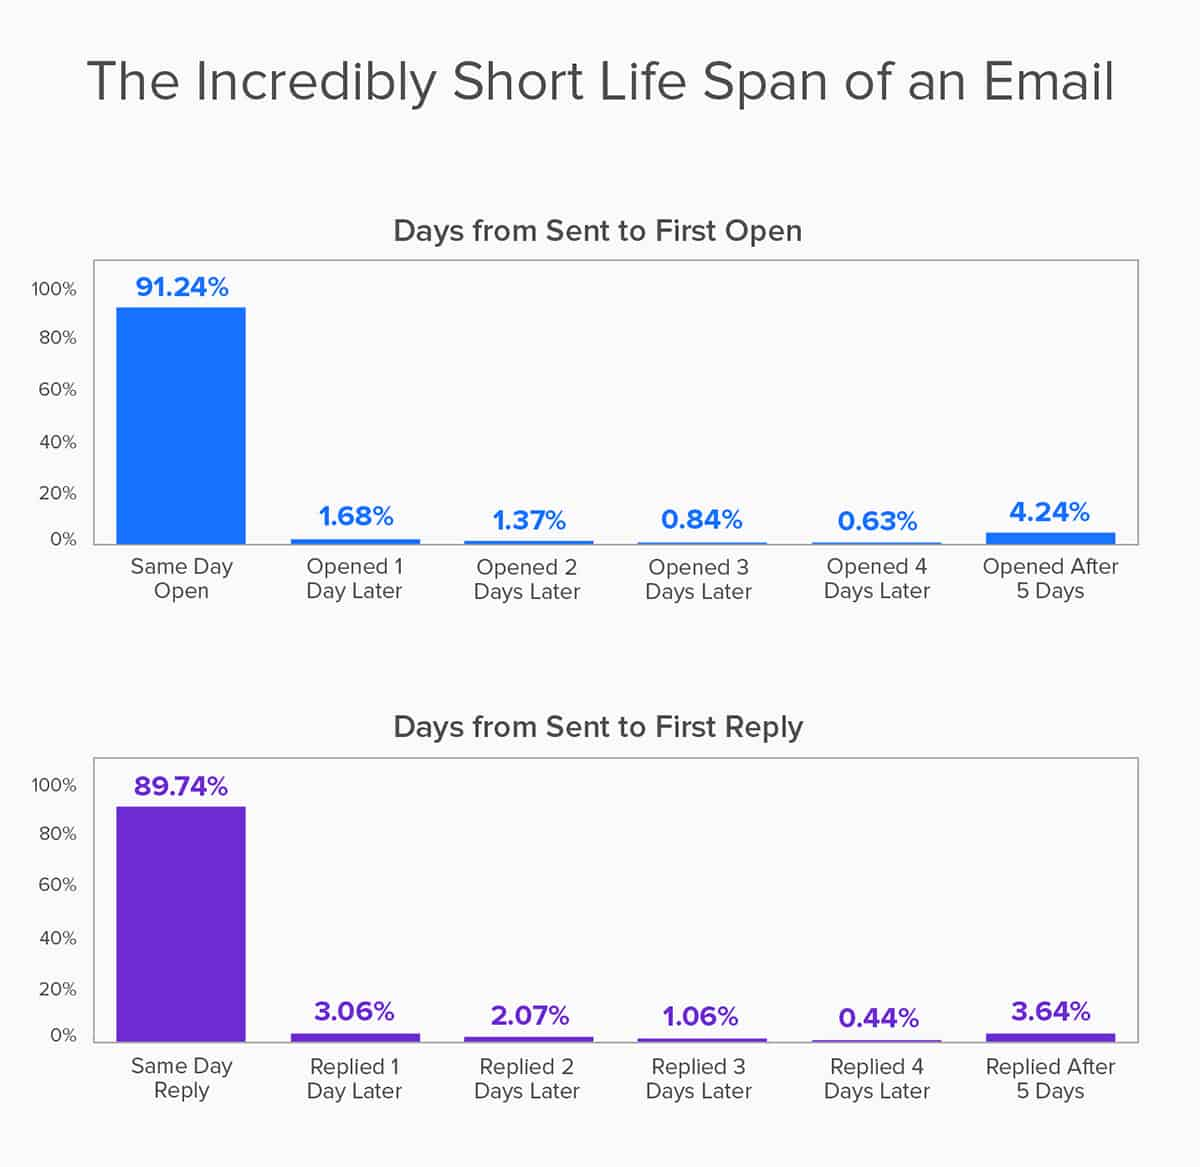 Yesware bar graphs showing the short life span of an email